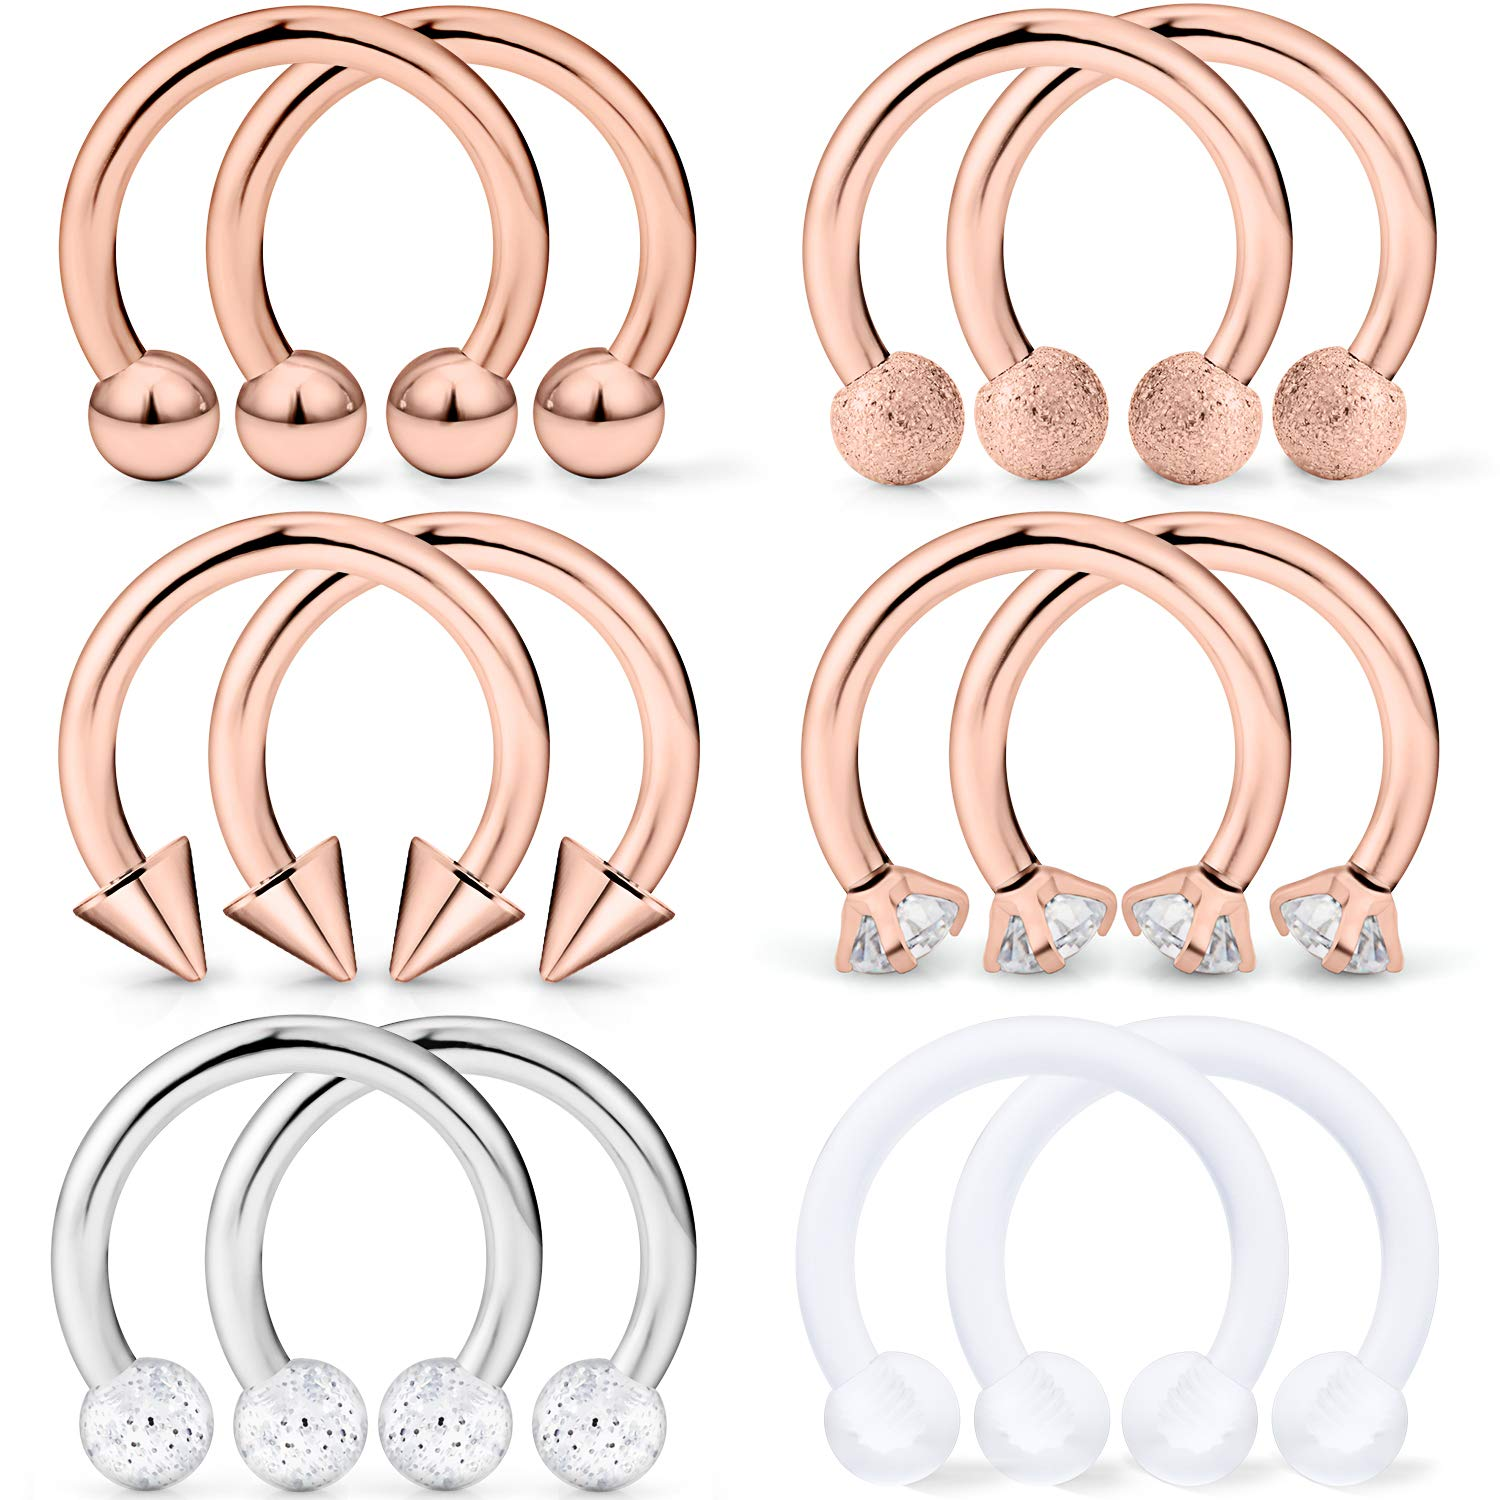 Hoeudjo Septum Hoop Nose Ring 16G Surgical Steel Circular Horseshoe Rings Piercing Jewelry with Cubic Zirconia Cartilage Helix Earring Barbell Retainer for Women Men 12 Pieces 8mm 10mm